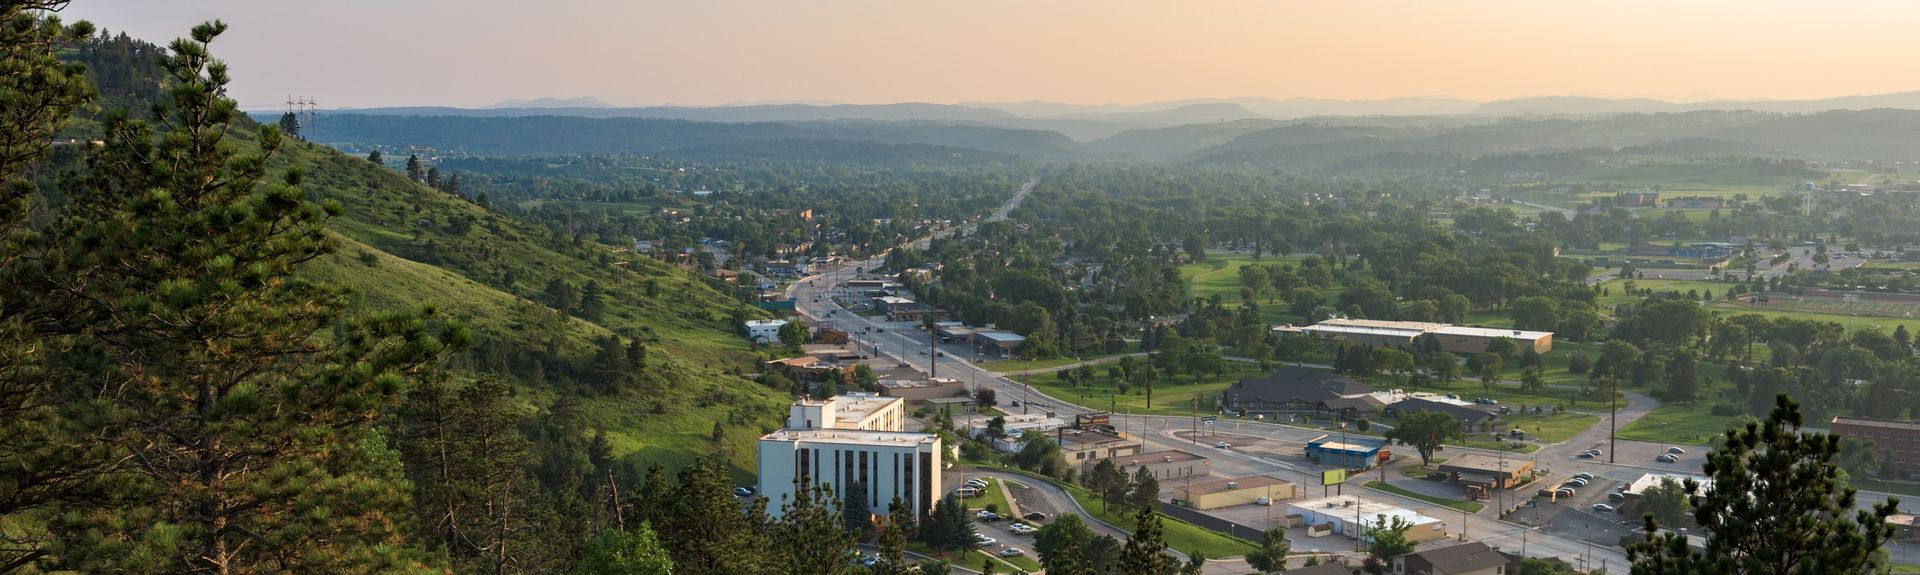 Rapid City, Dakota del Sur, Estados Unidos